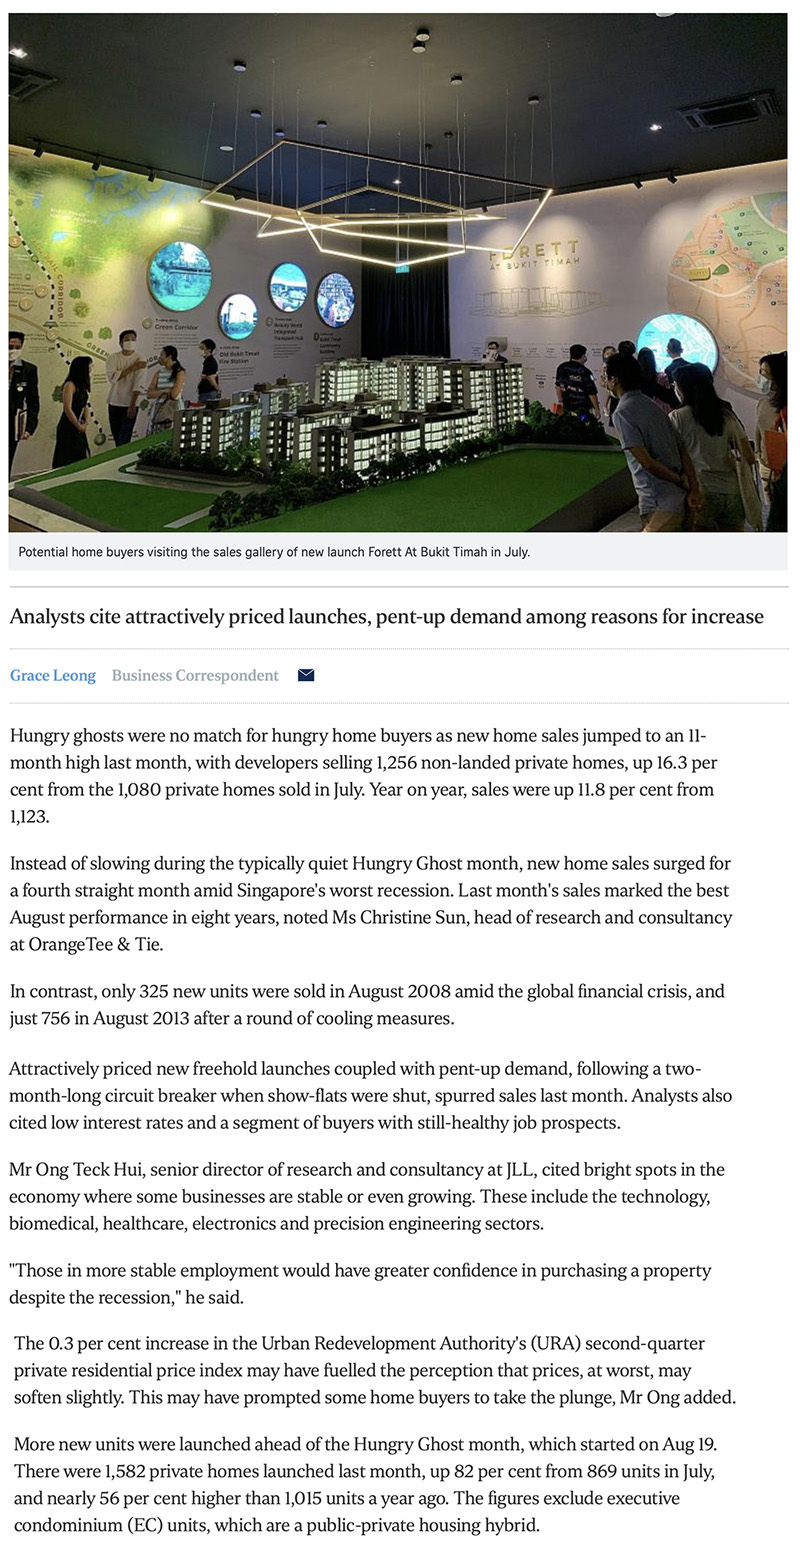 The Woodleigh Residences - New home sales surge to 11-month high in August 1